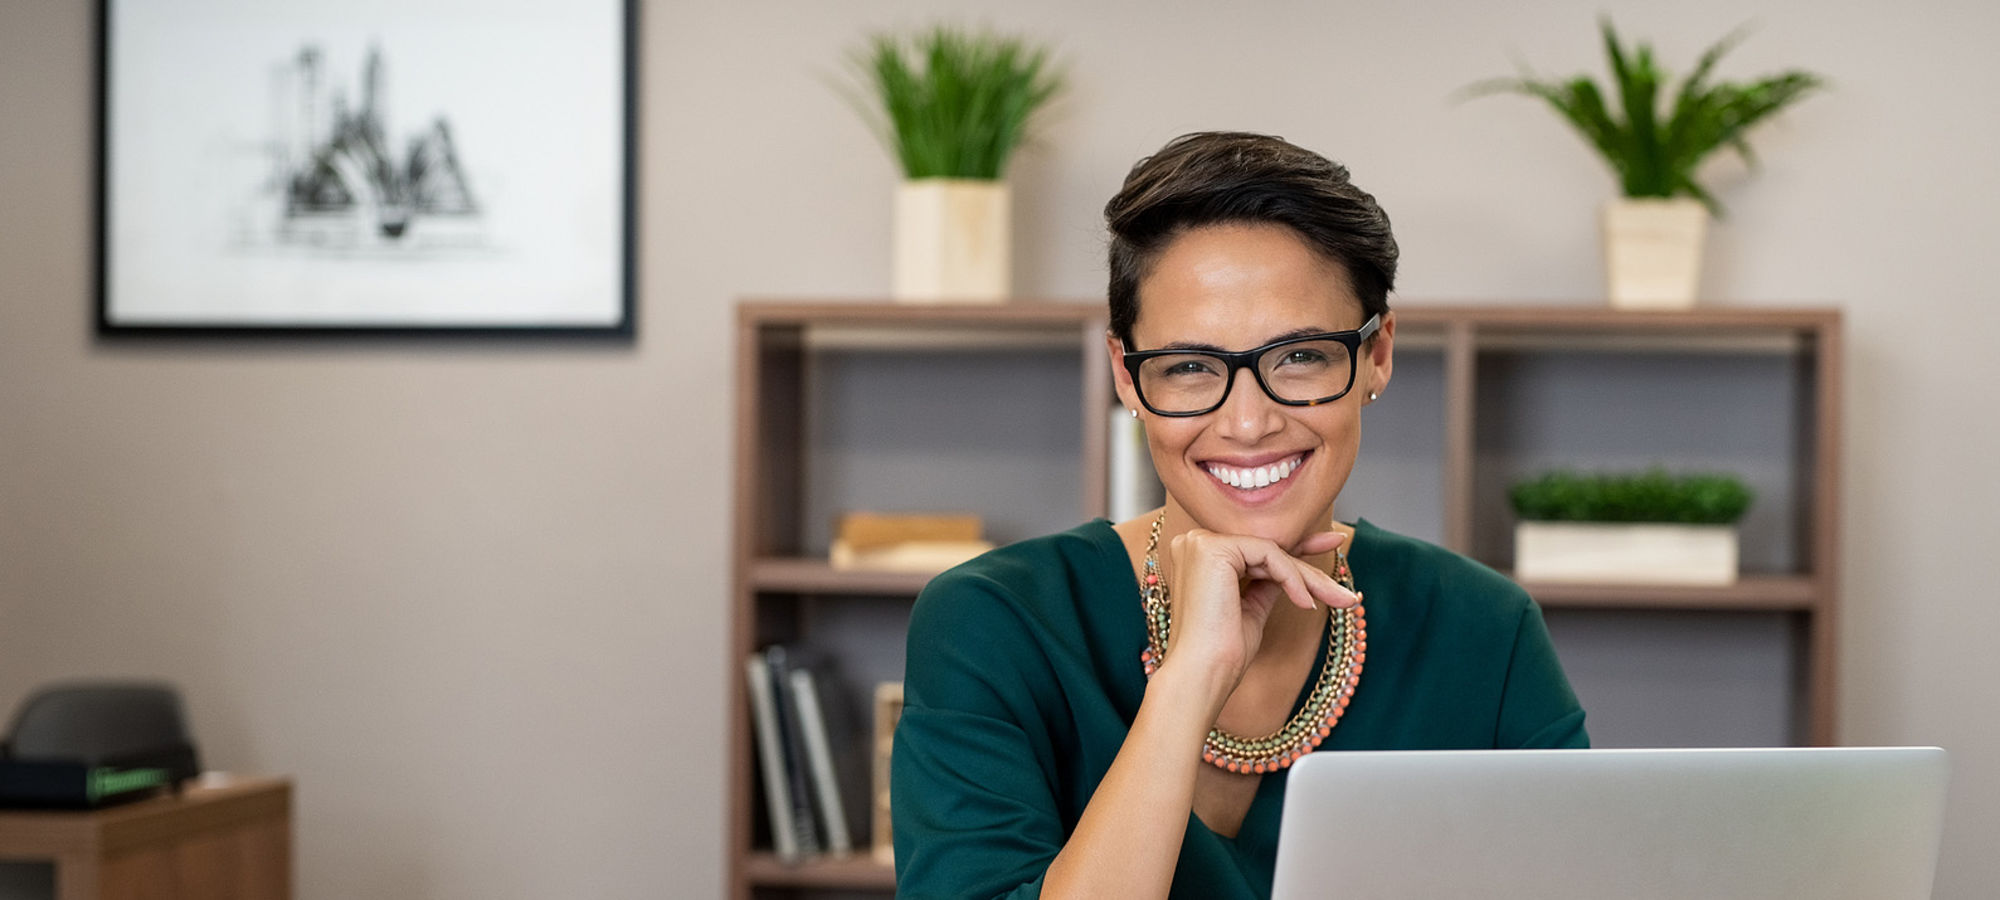 Smiling woman sitting at computer